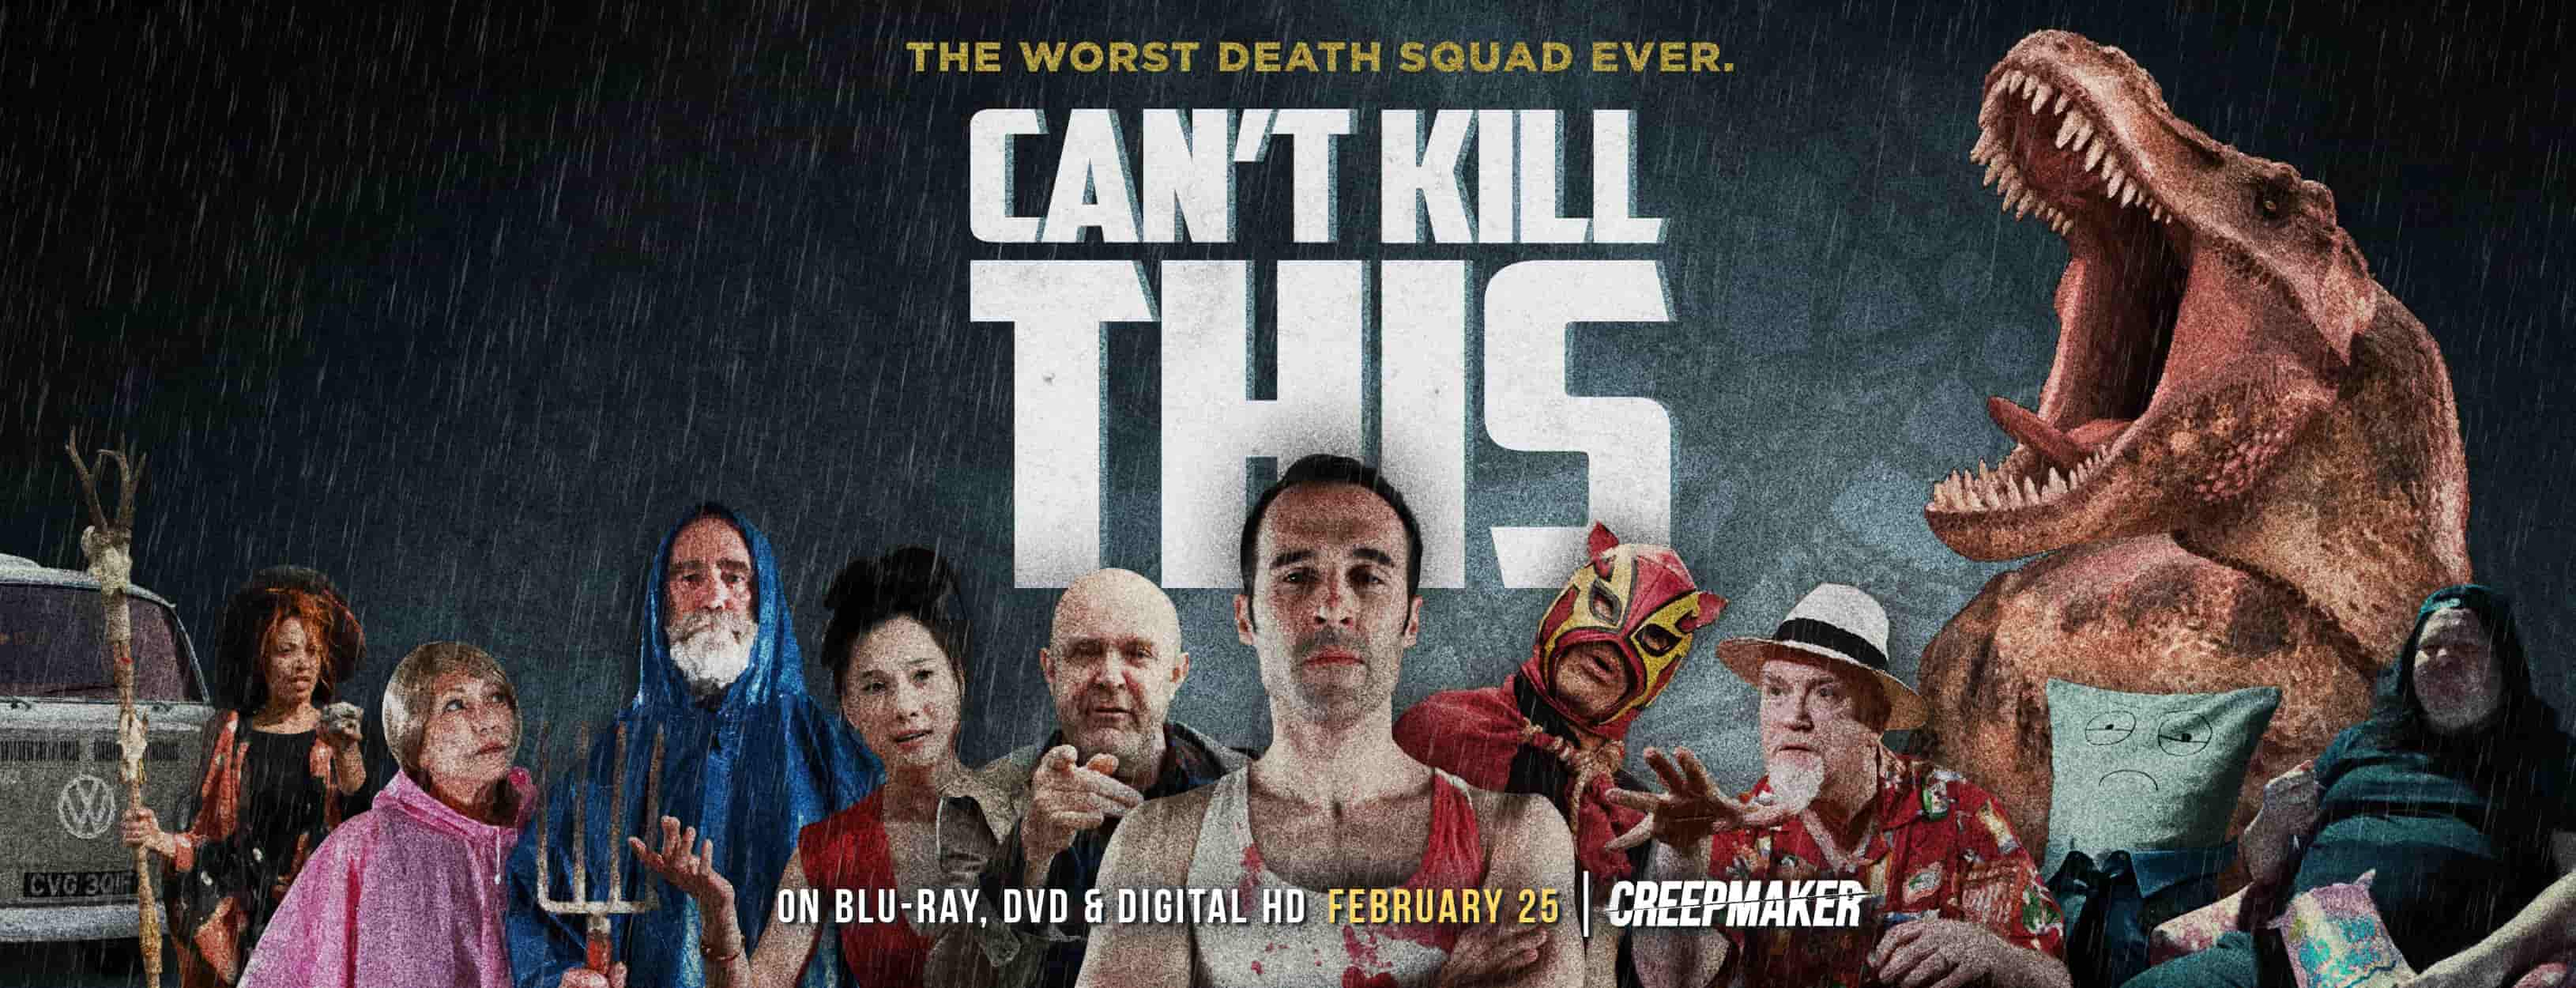 Can't Kill This (formerly Fuck You Immortality)